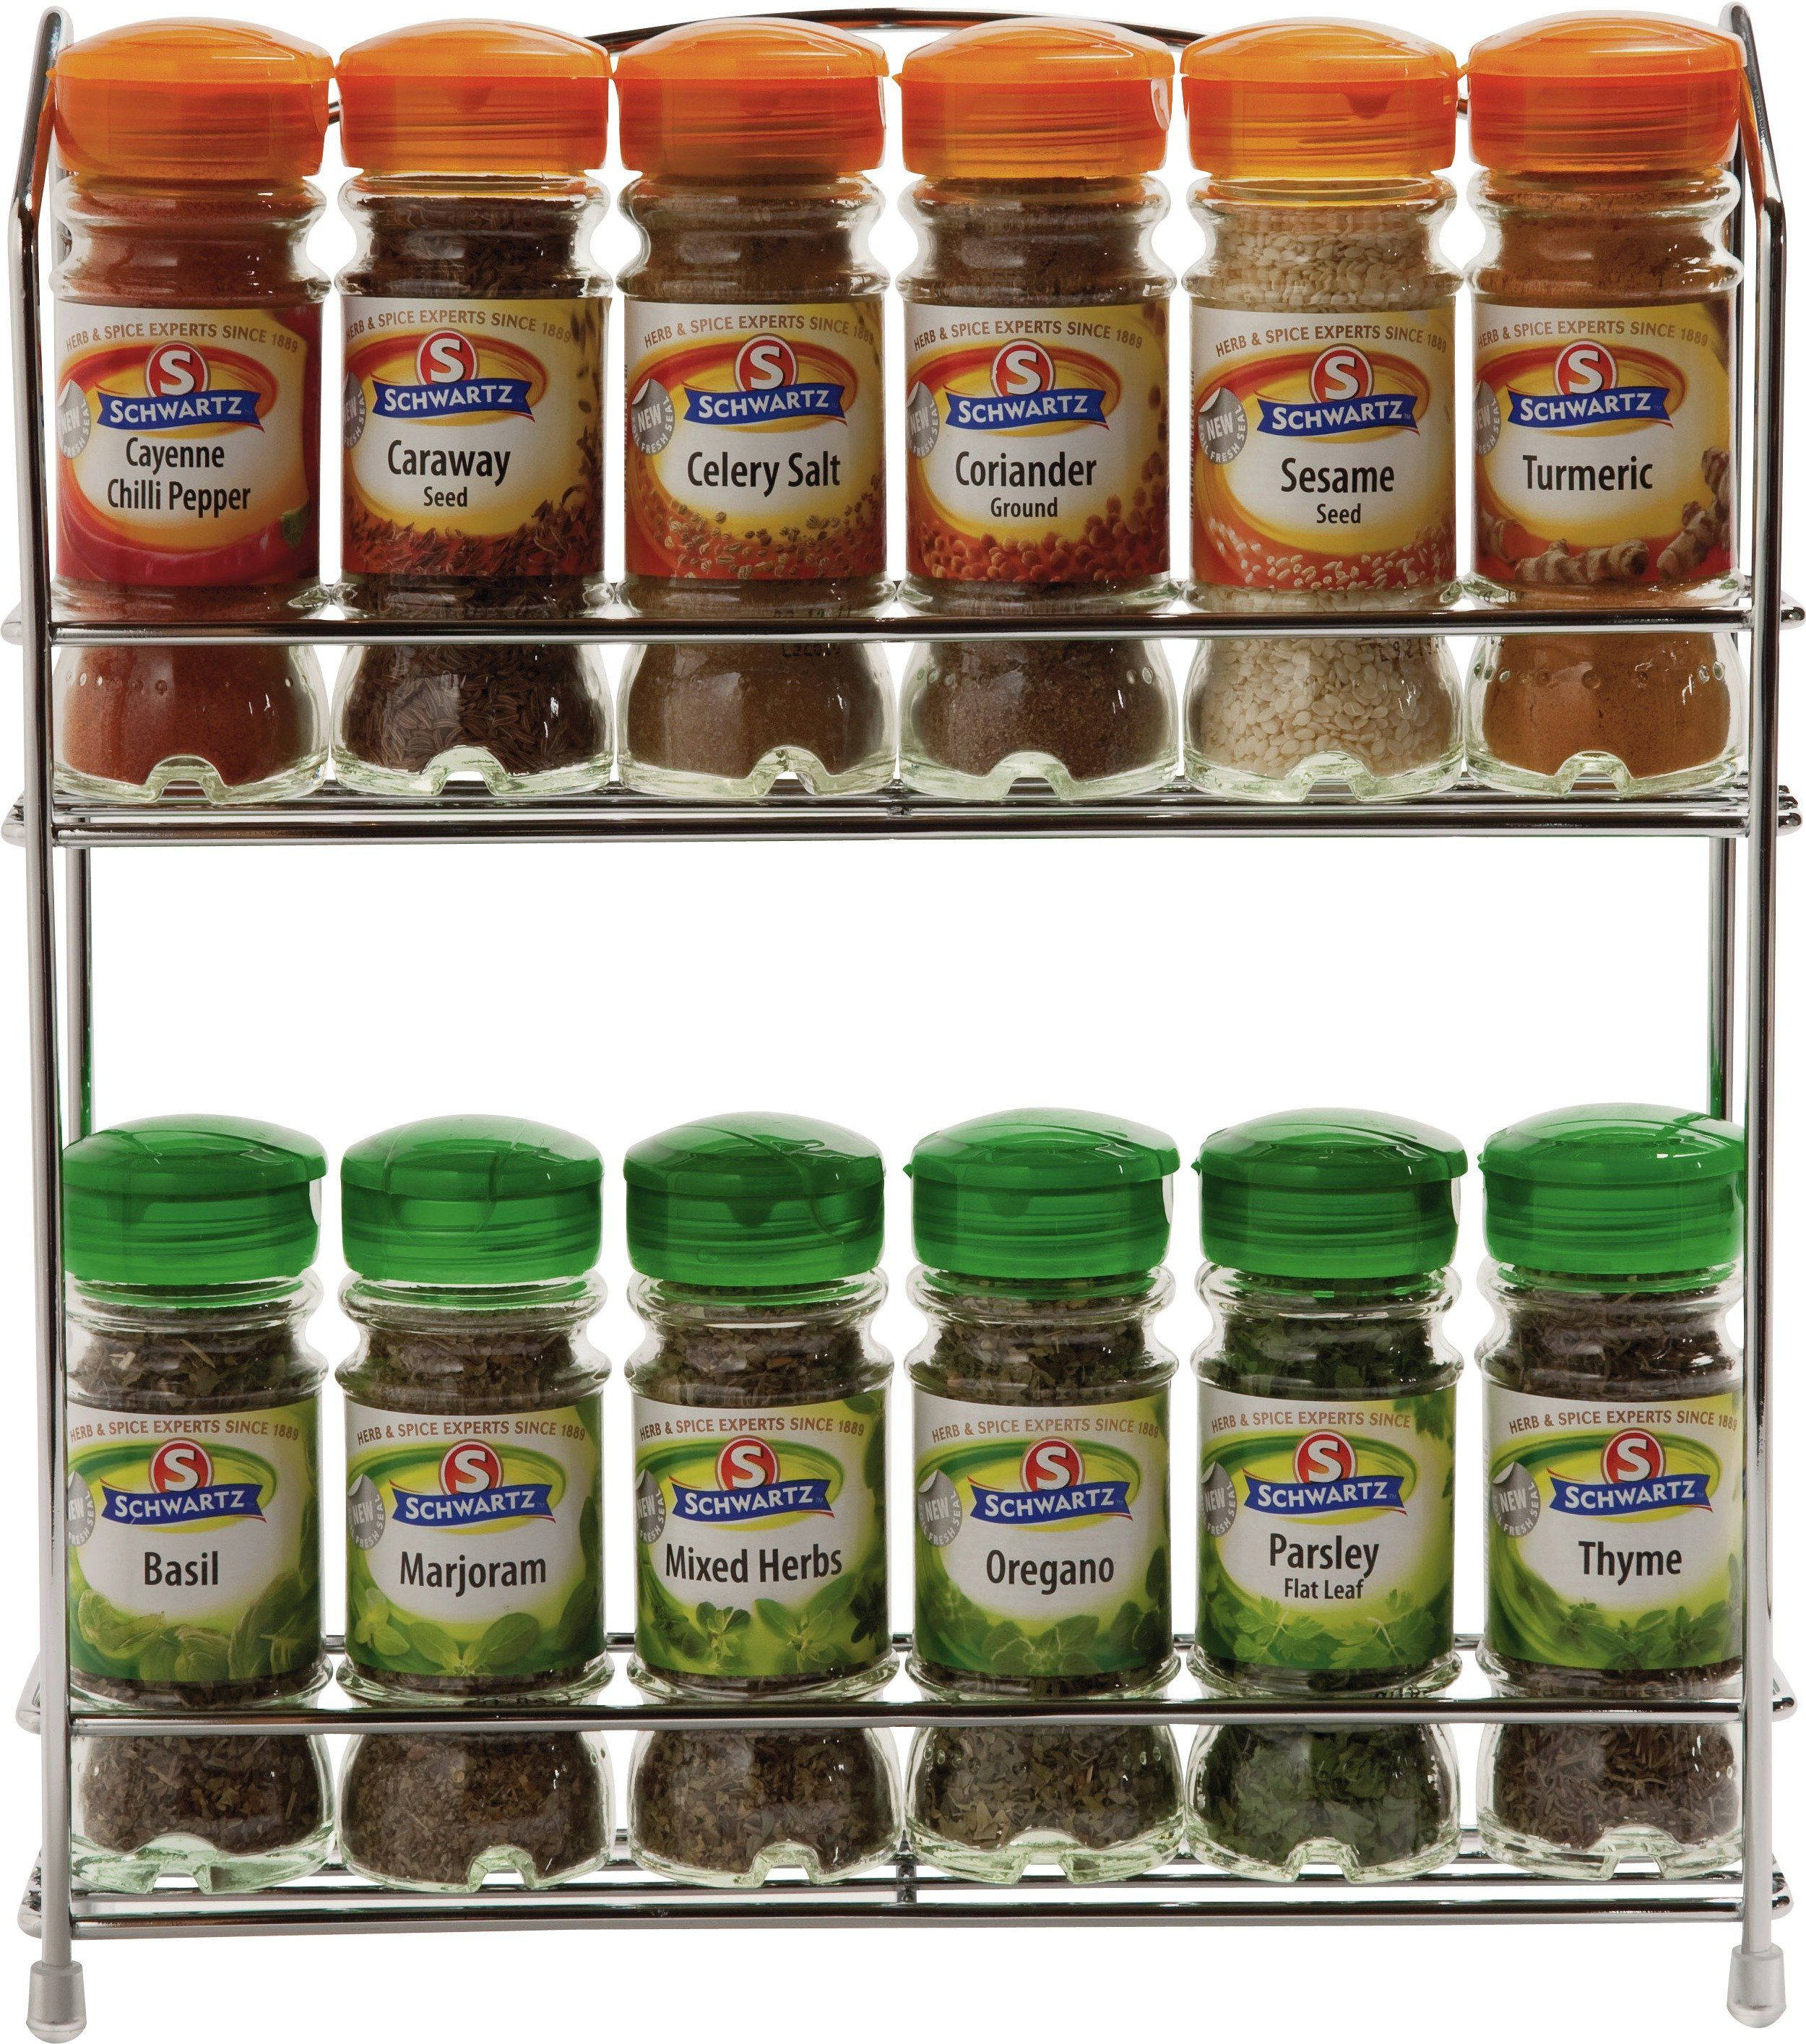 HOME   Wall Mountable Wire 12 Jar Rack With Spices: This Wall Mountable  Spice Rack